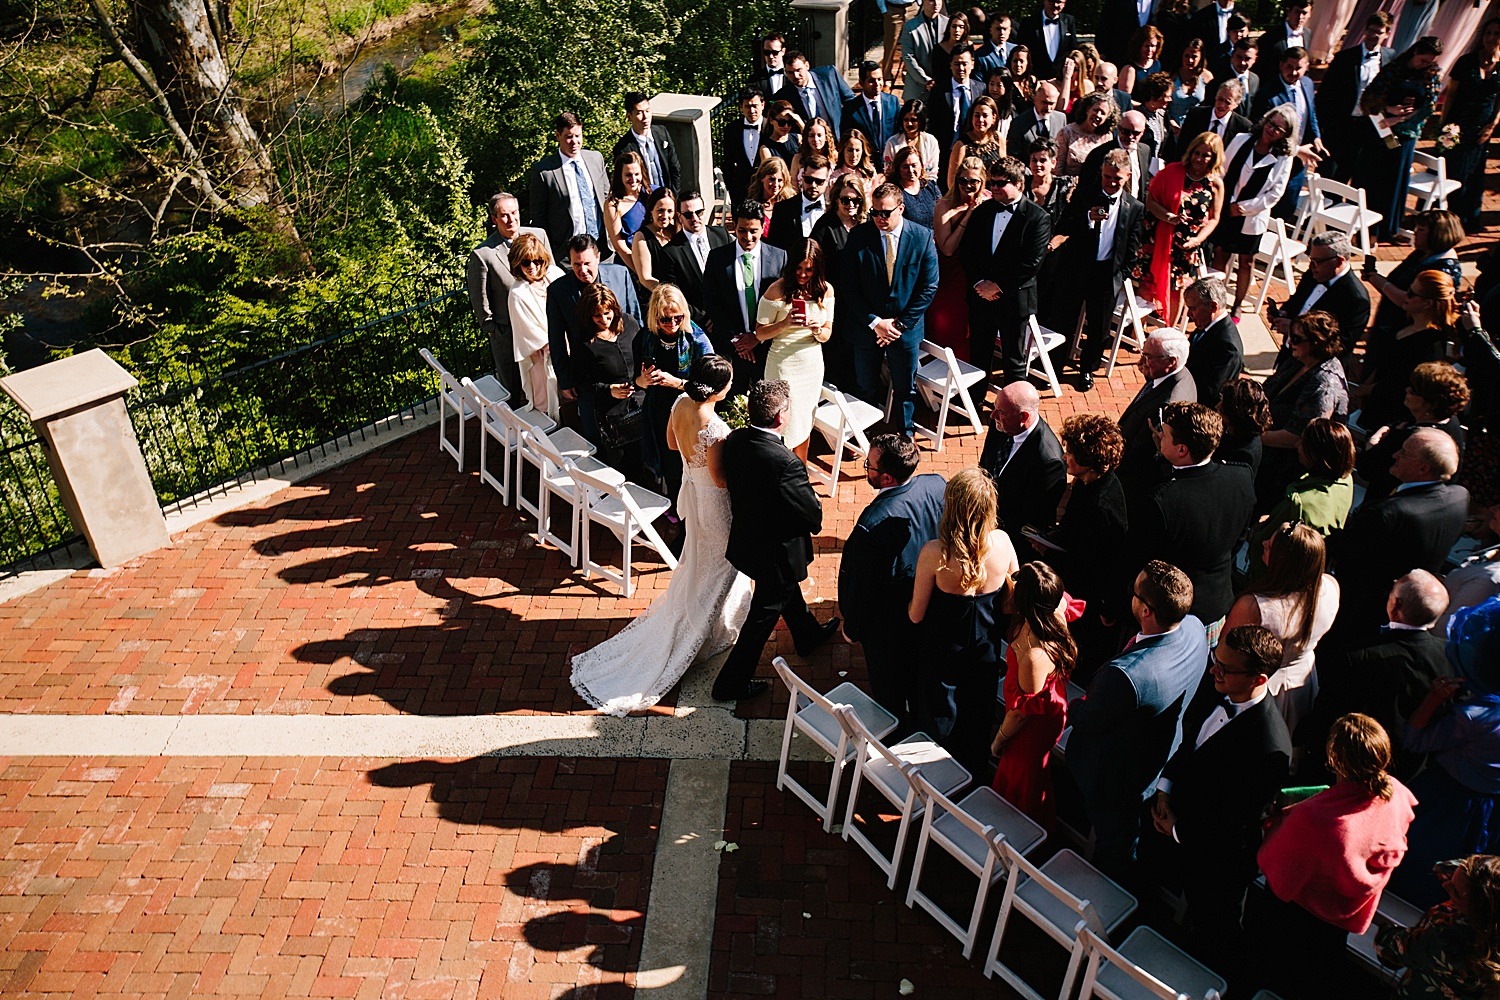 caitlingmarc_hotelduvillage_newhope_estate_spring_wedding)image049.jpg